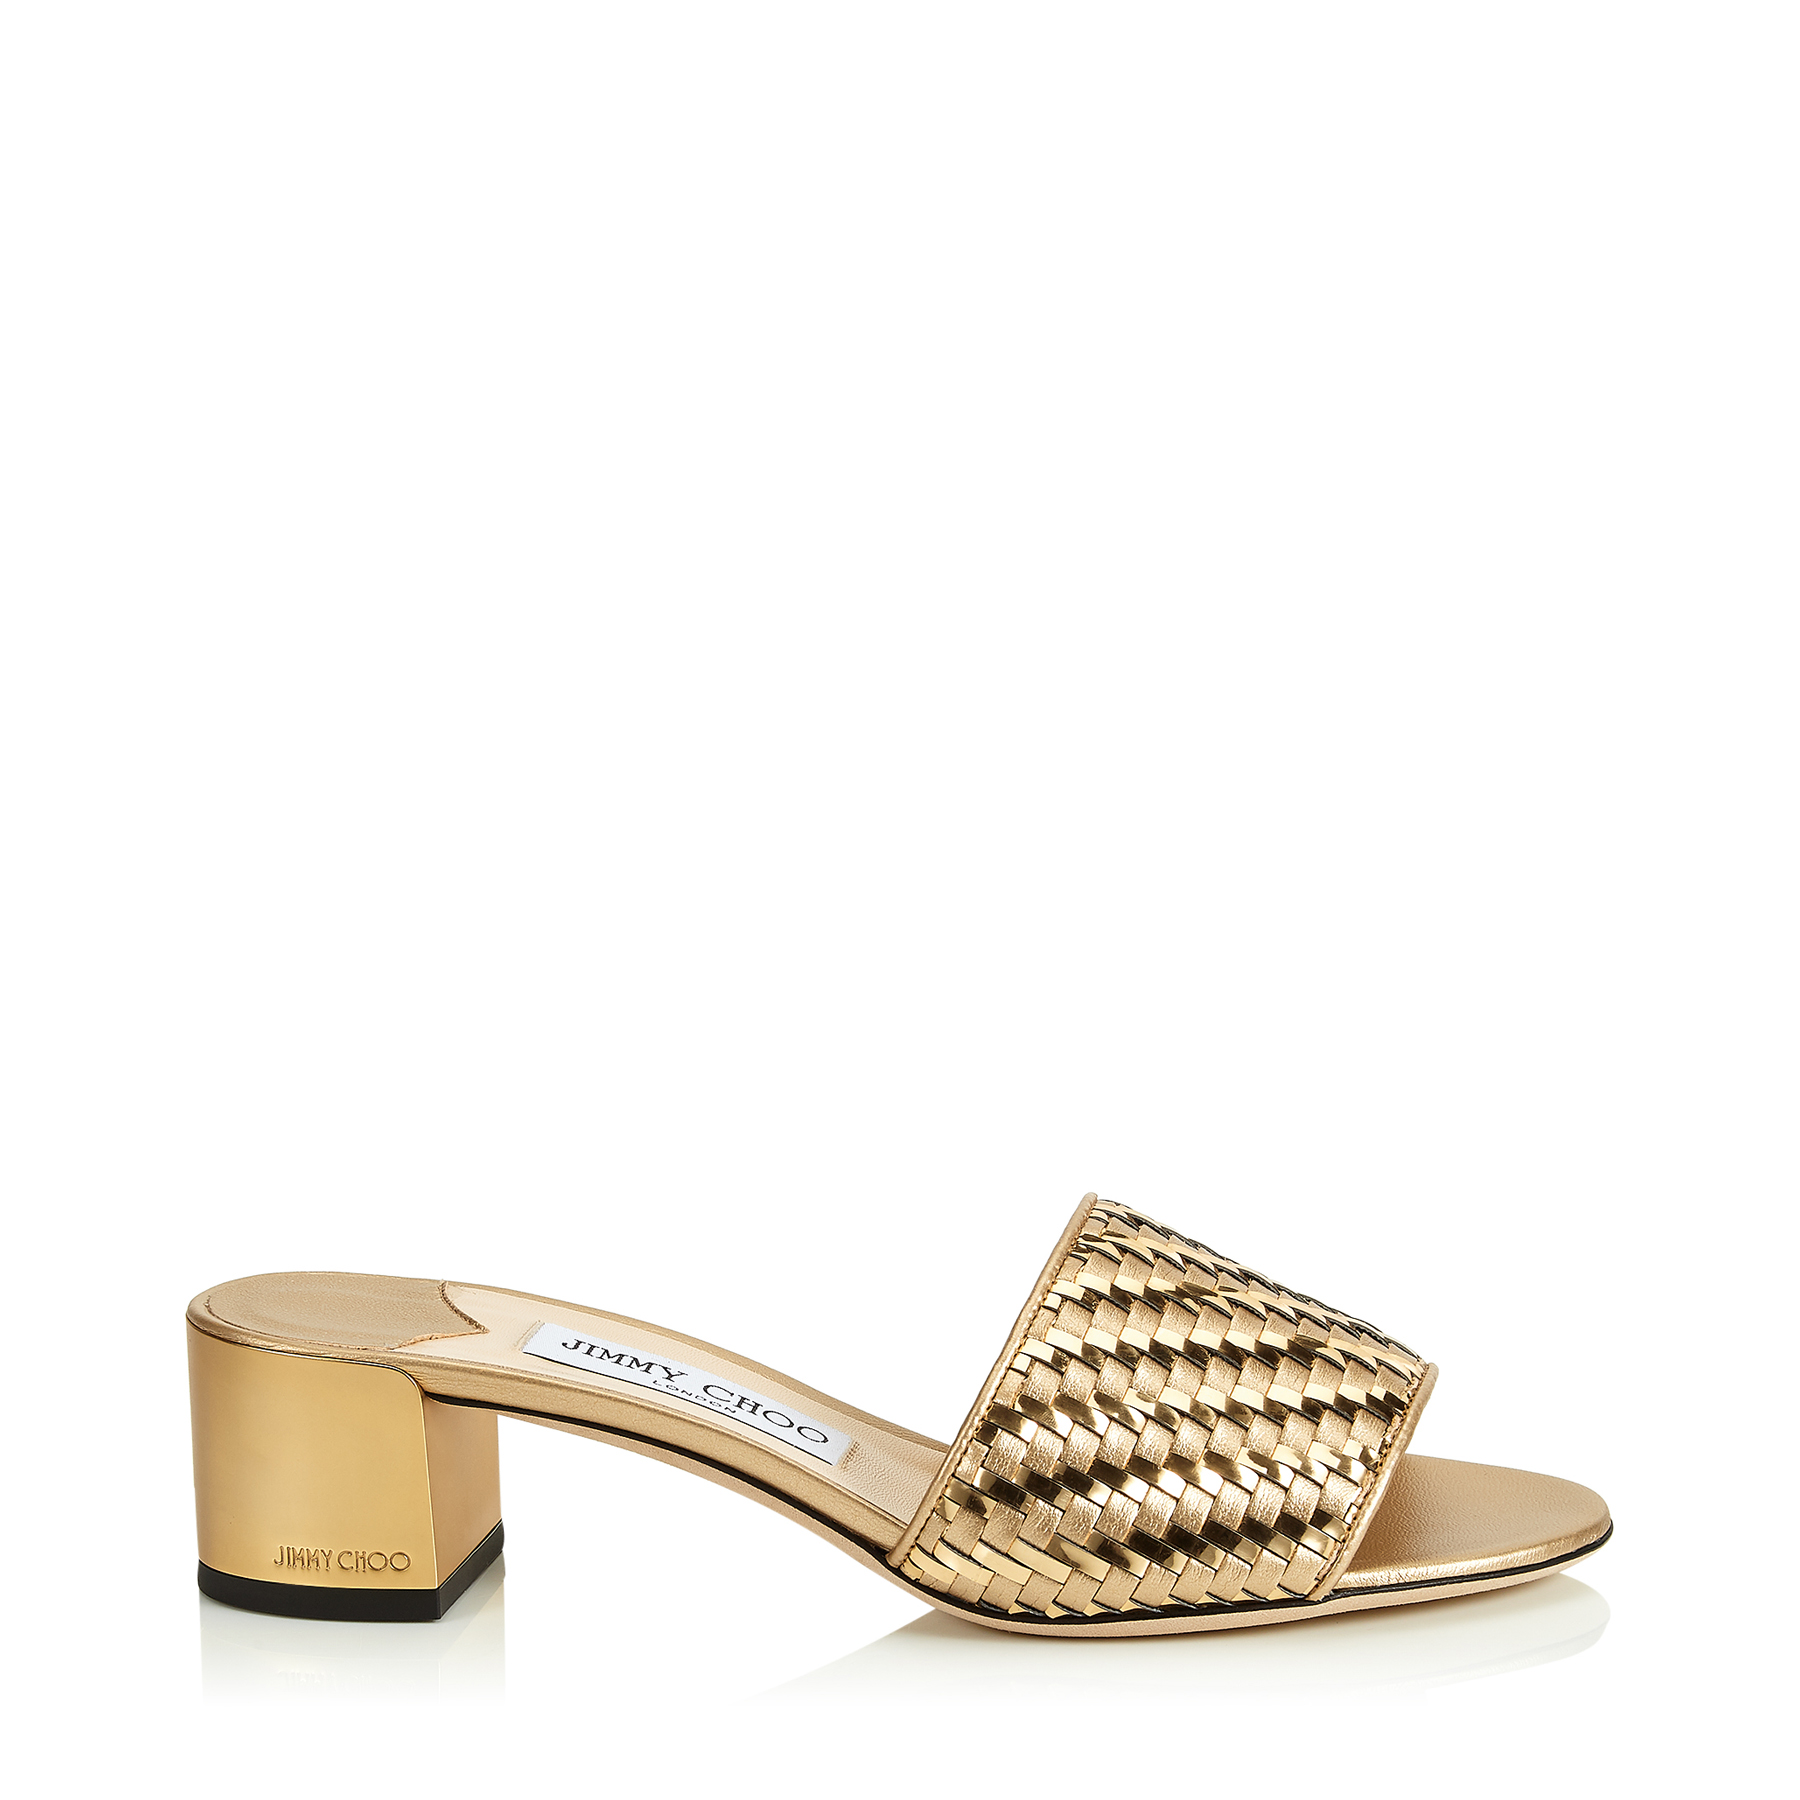 Jimmy Choo Slippers JONI 40 GOLD MIX WOVEN METALLIC FABRIC SLIDES